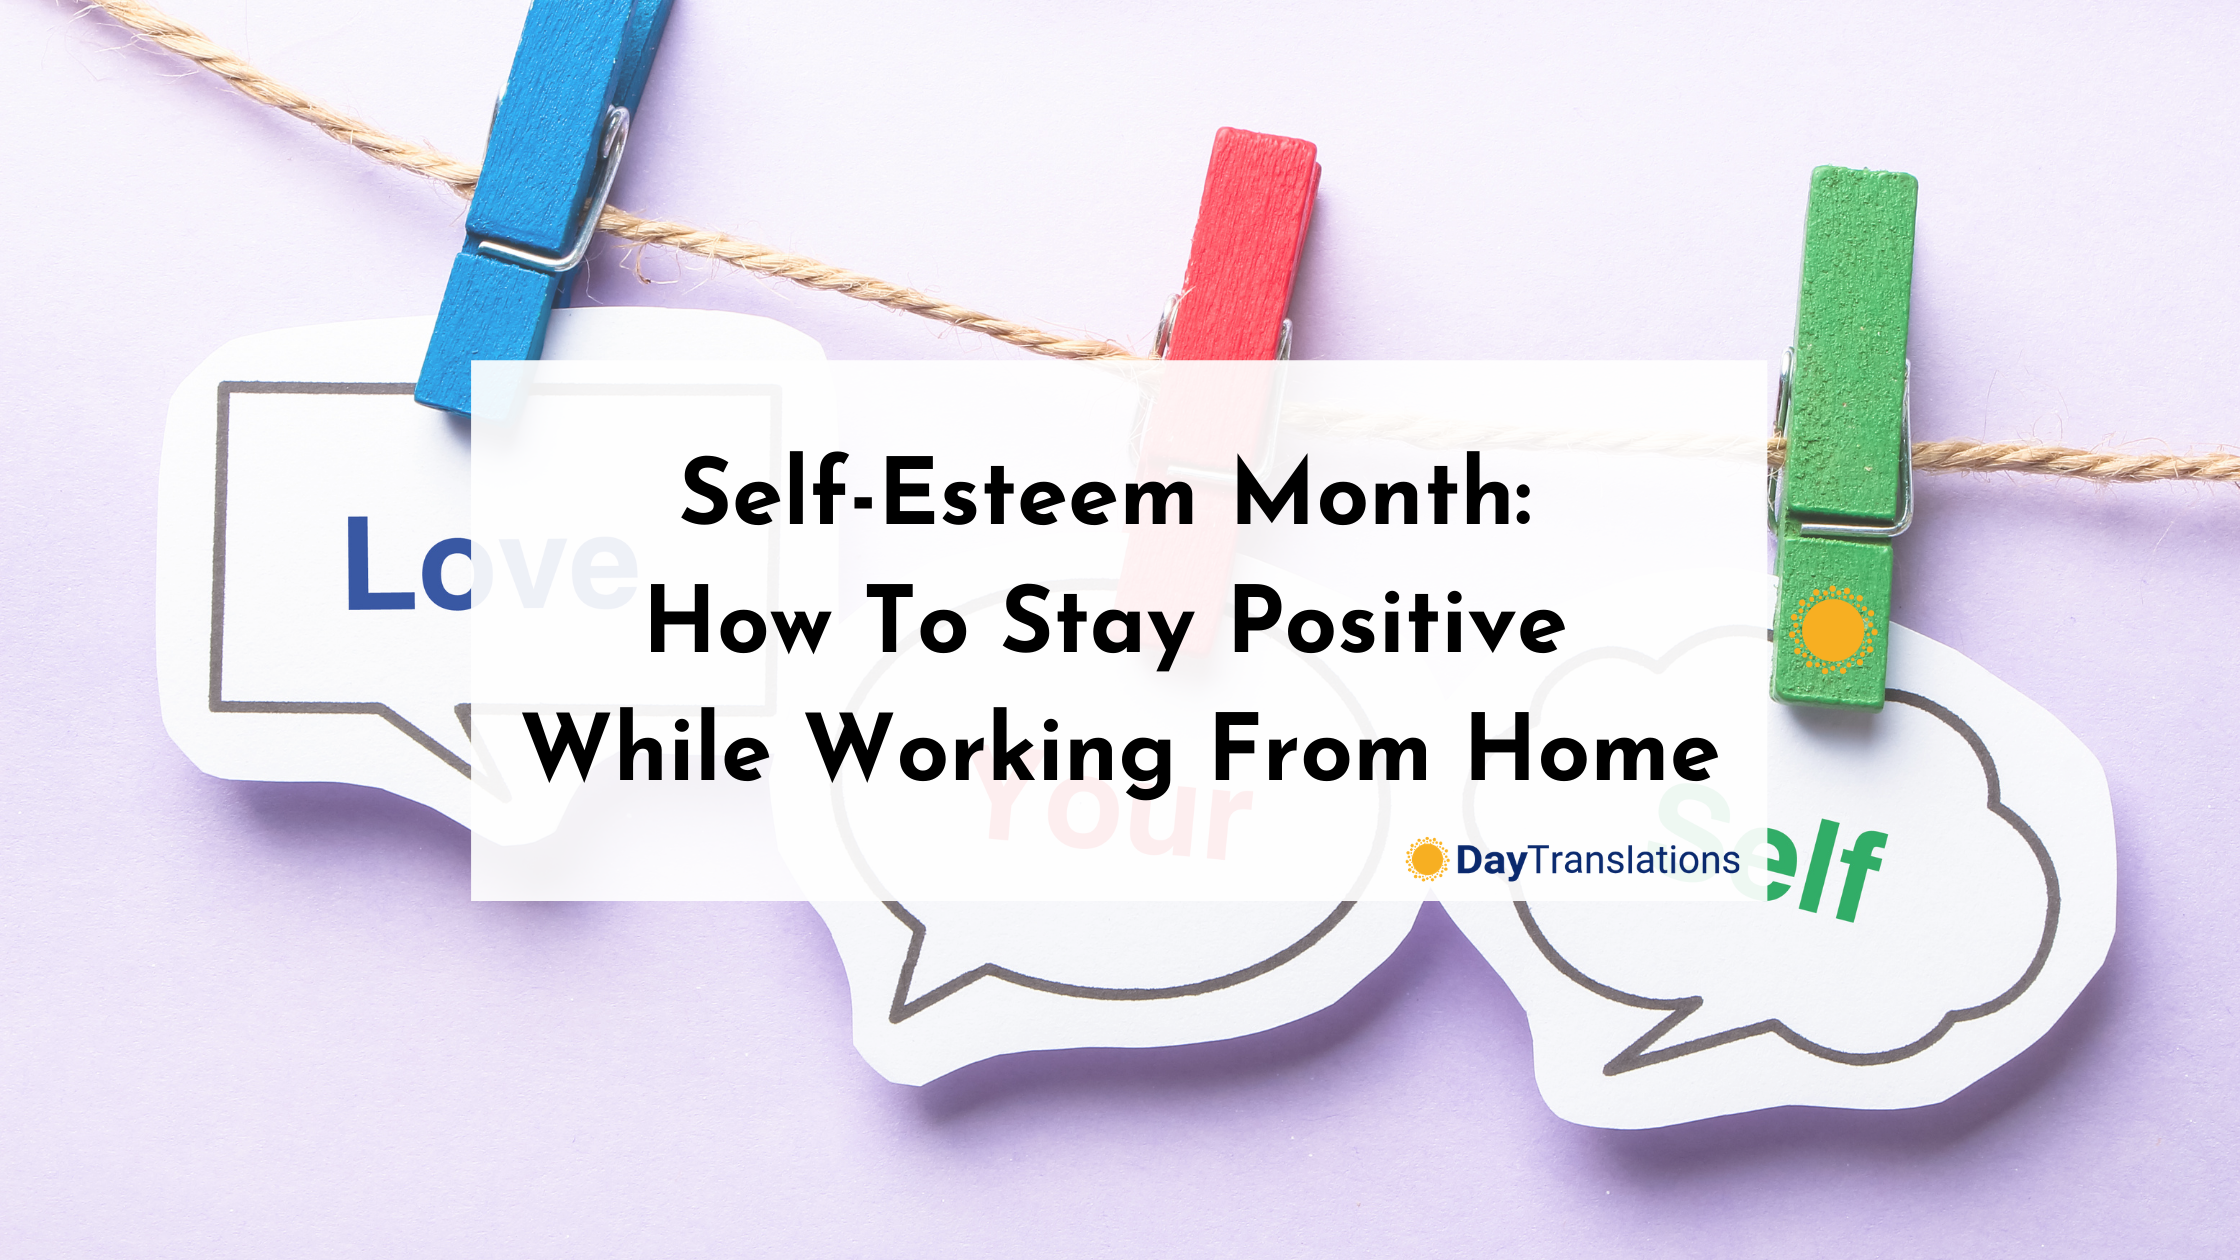 Self-Esteem Month: How To Stay Positive While Working From Home